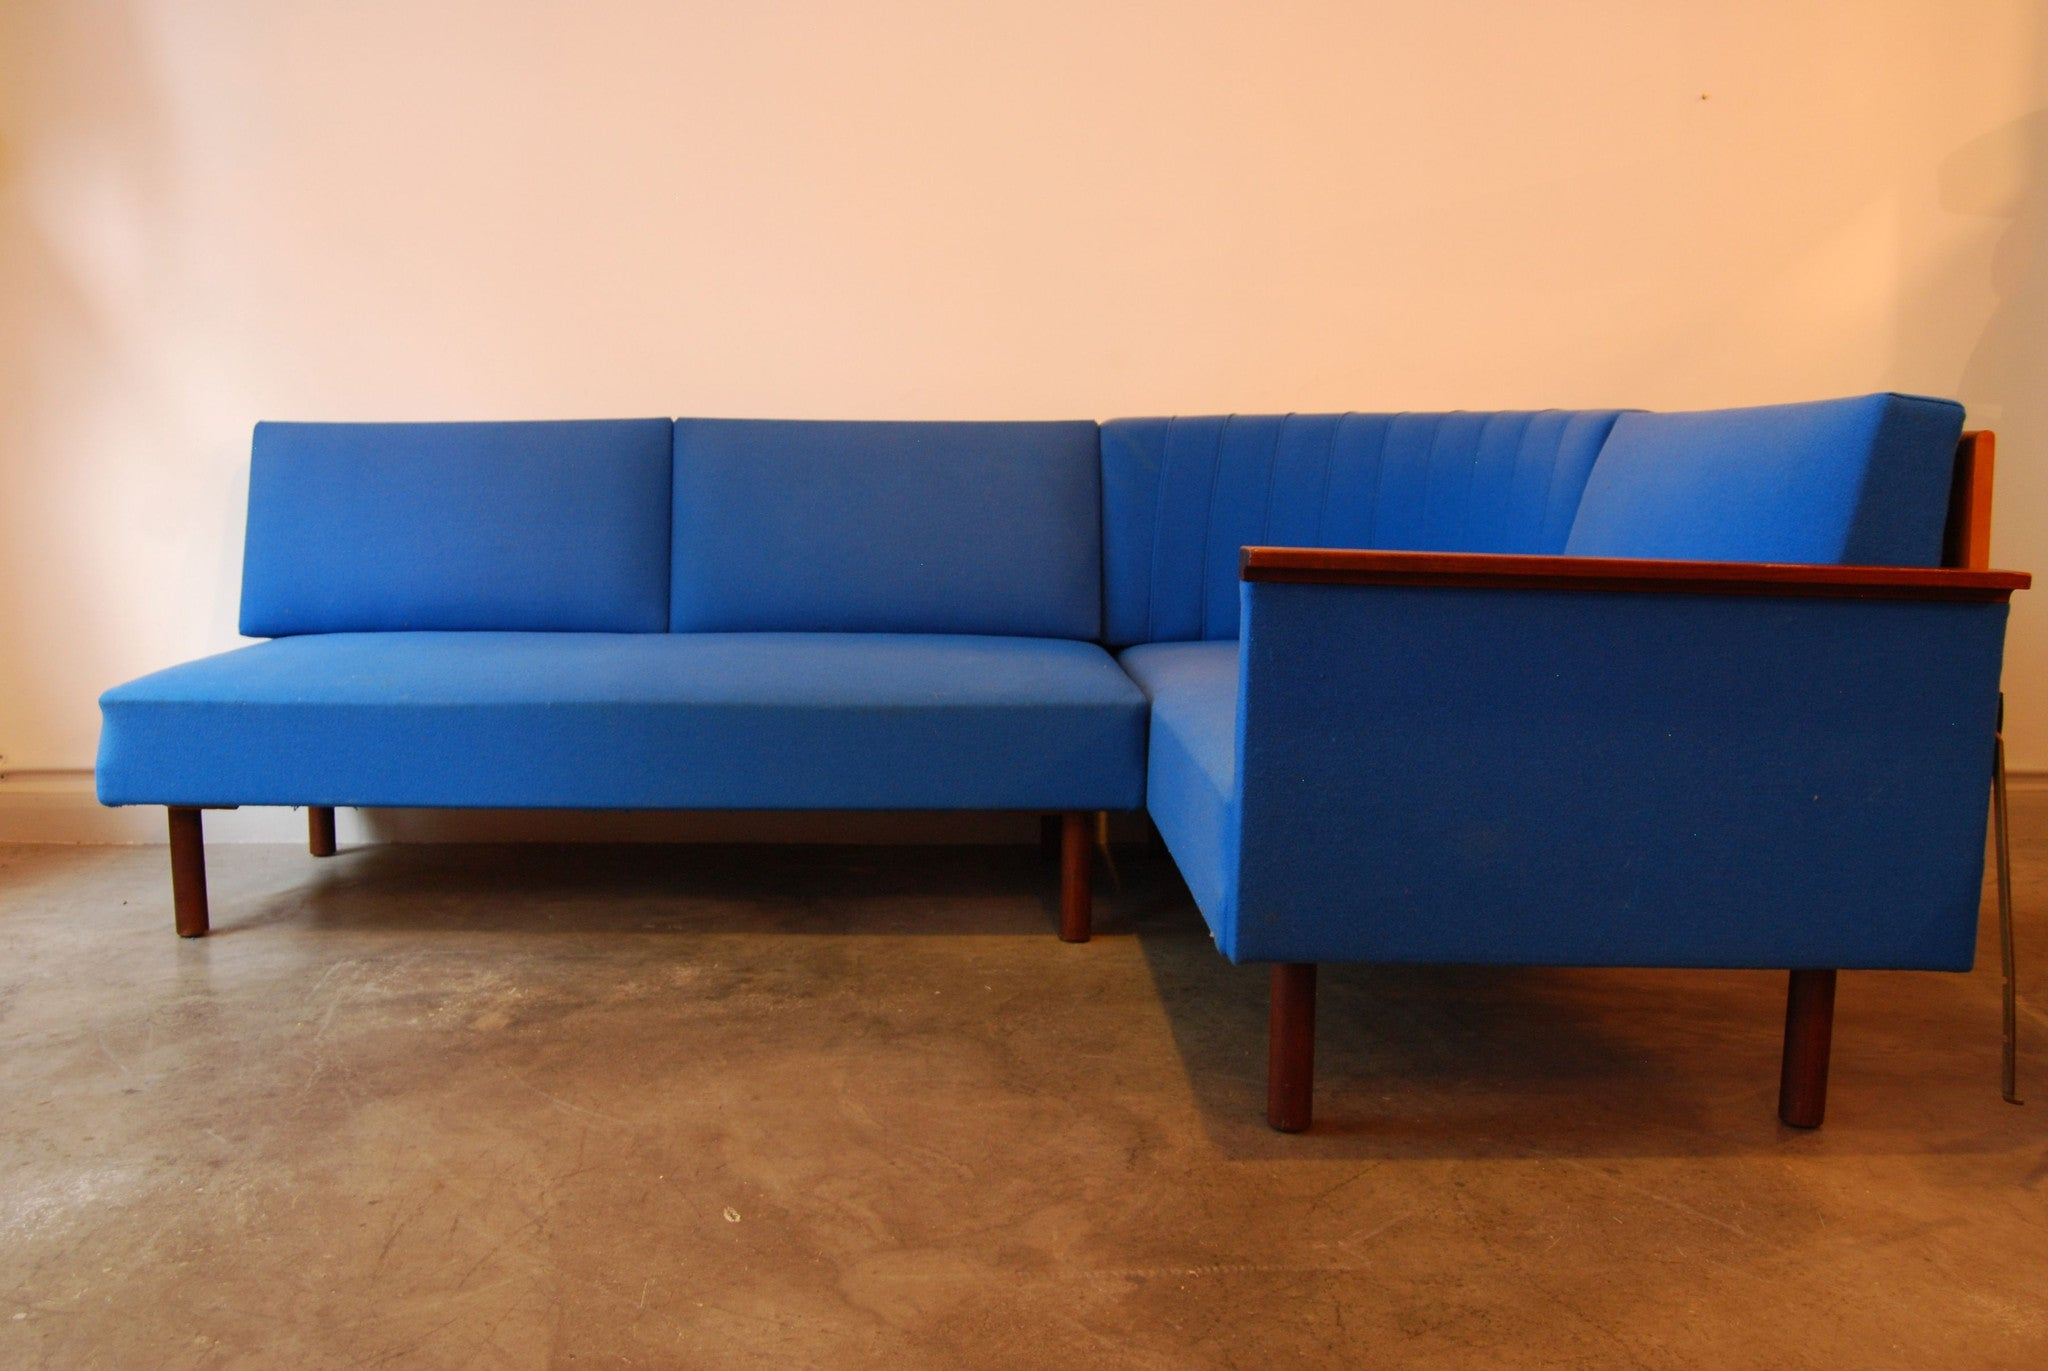 Chase & Sorensen L-shaped sofabed